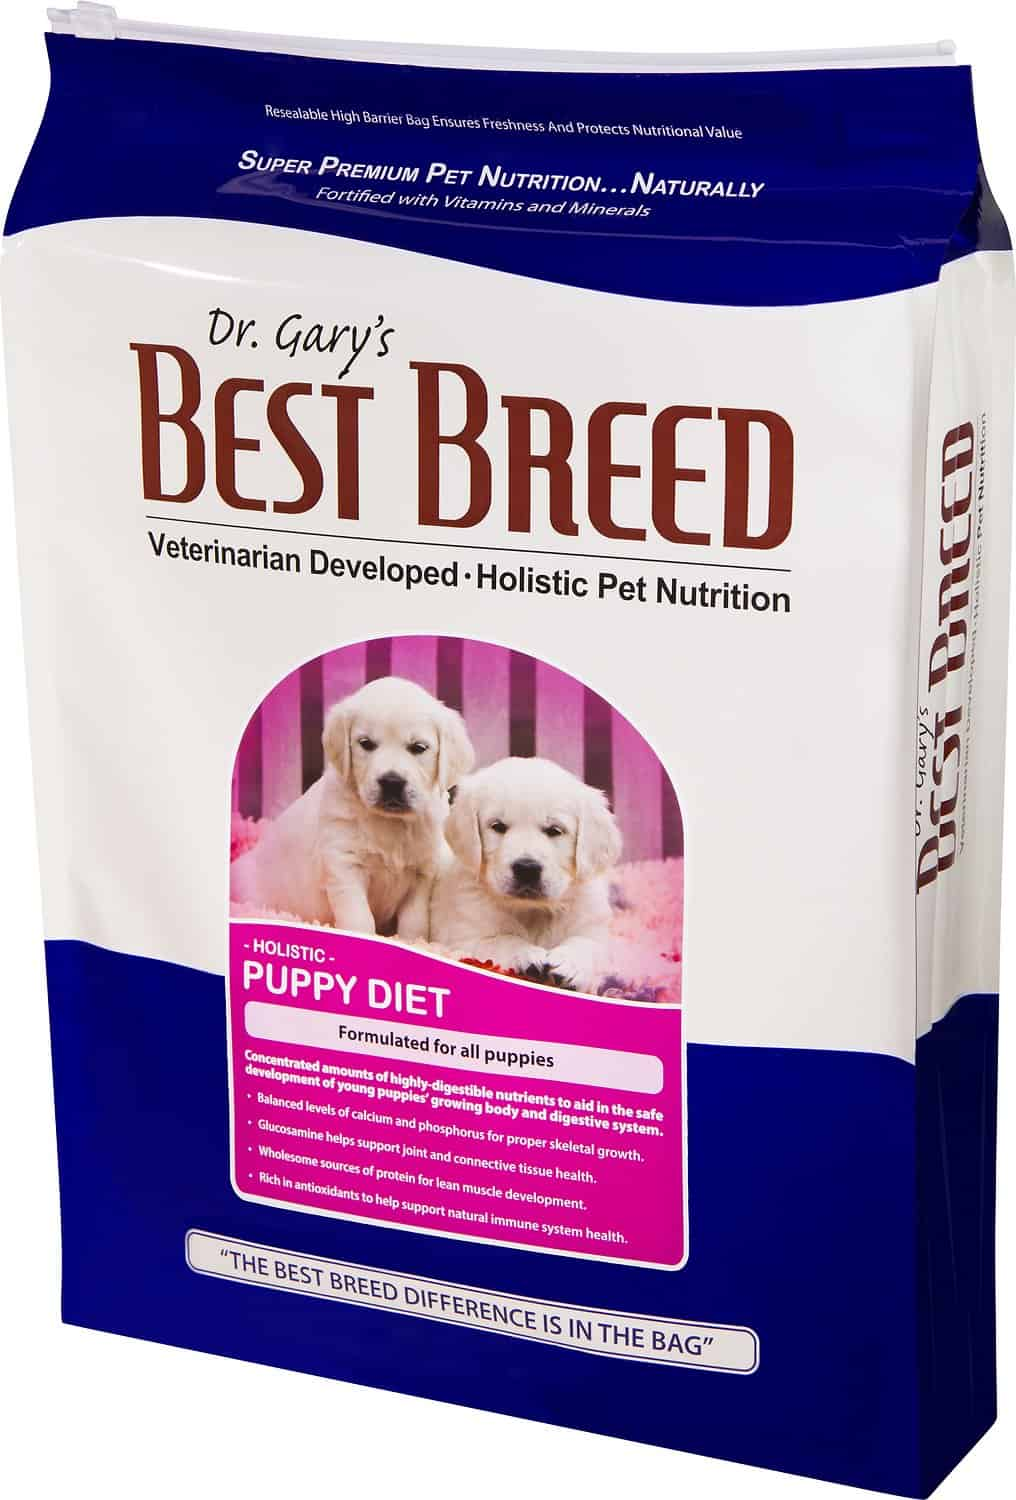 Dr. Gary's Best Breed Dog Food Review 2020: Best Holistic Pet Food? 14